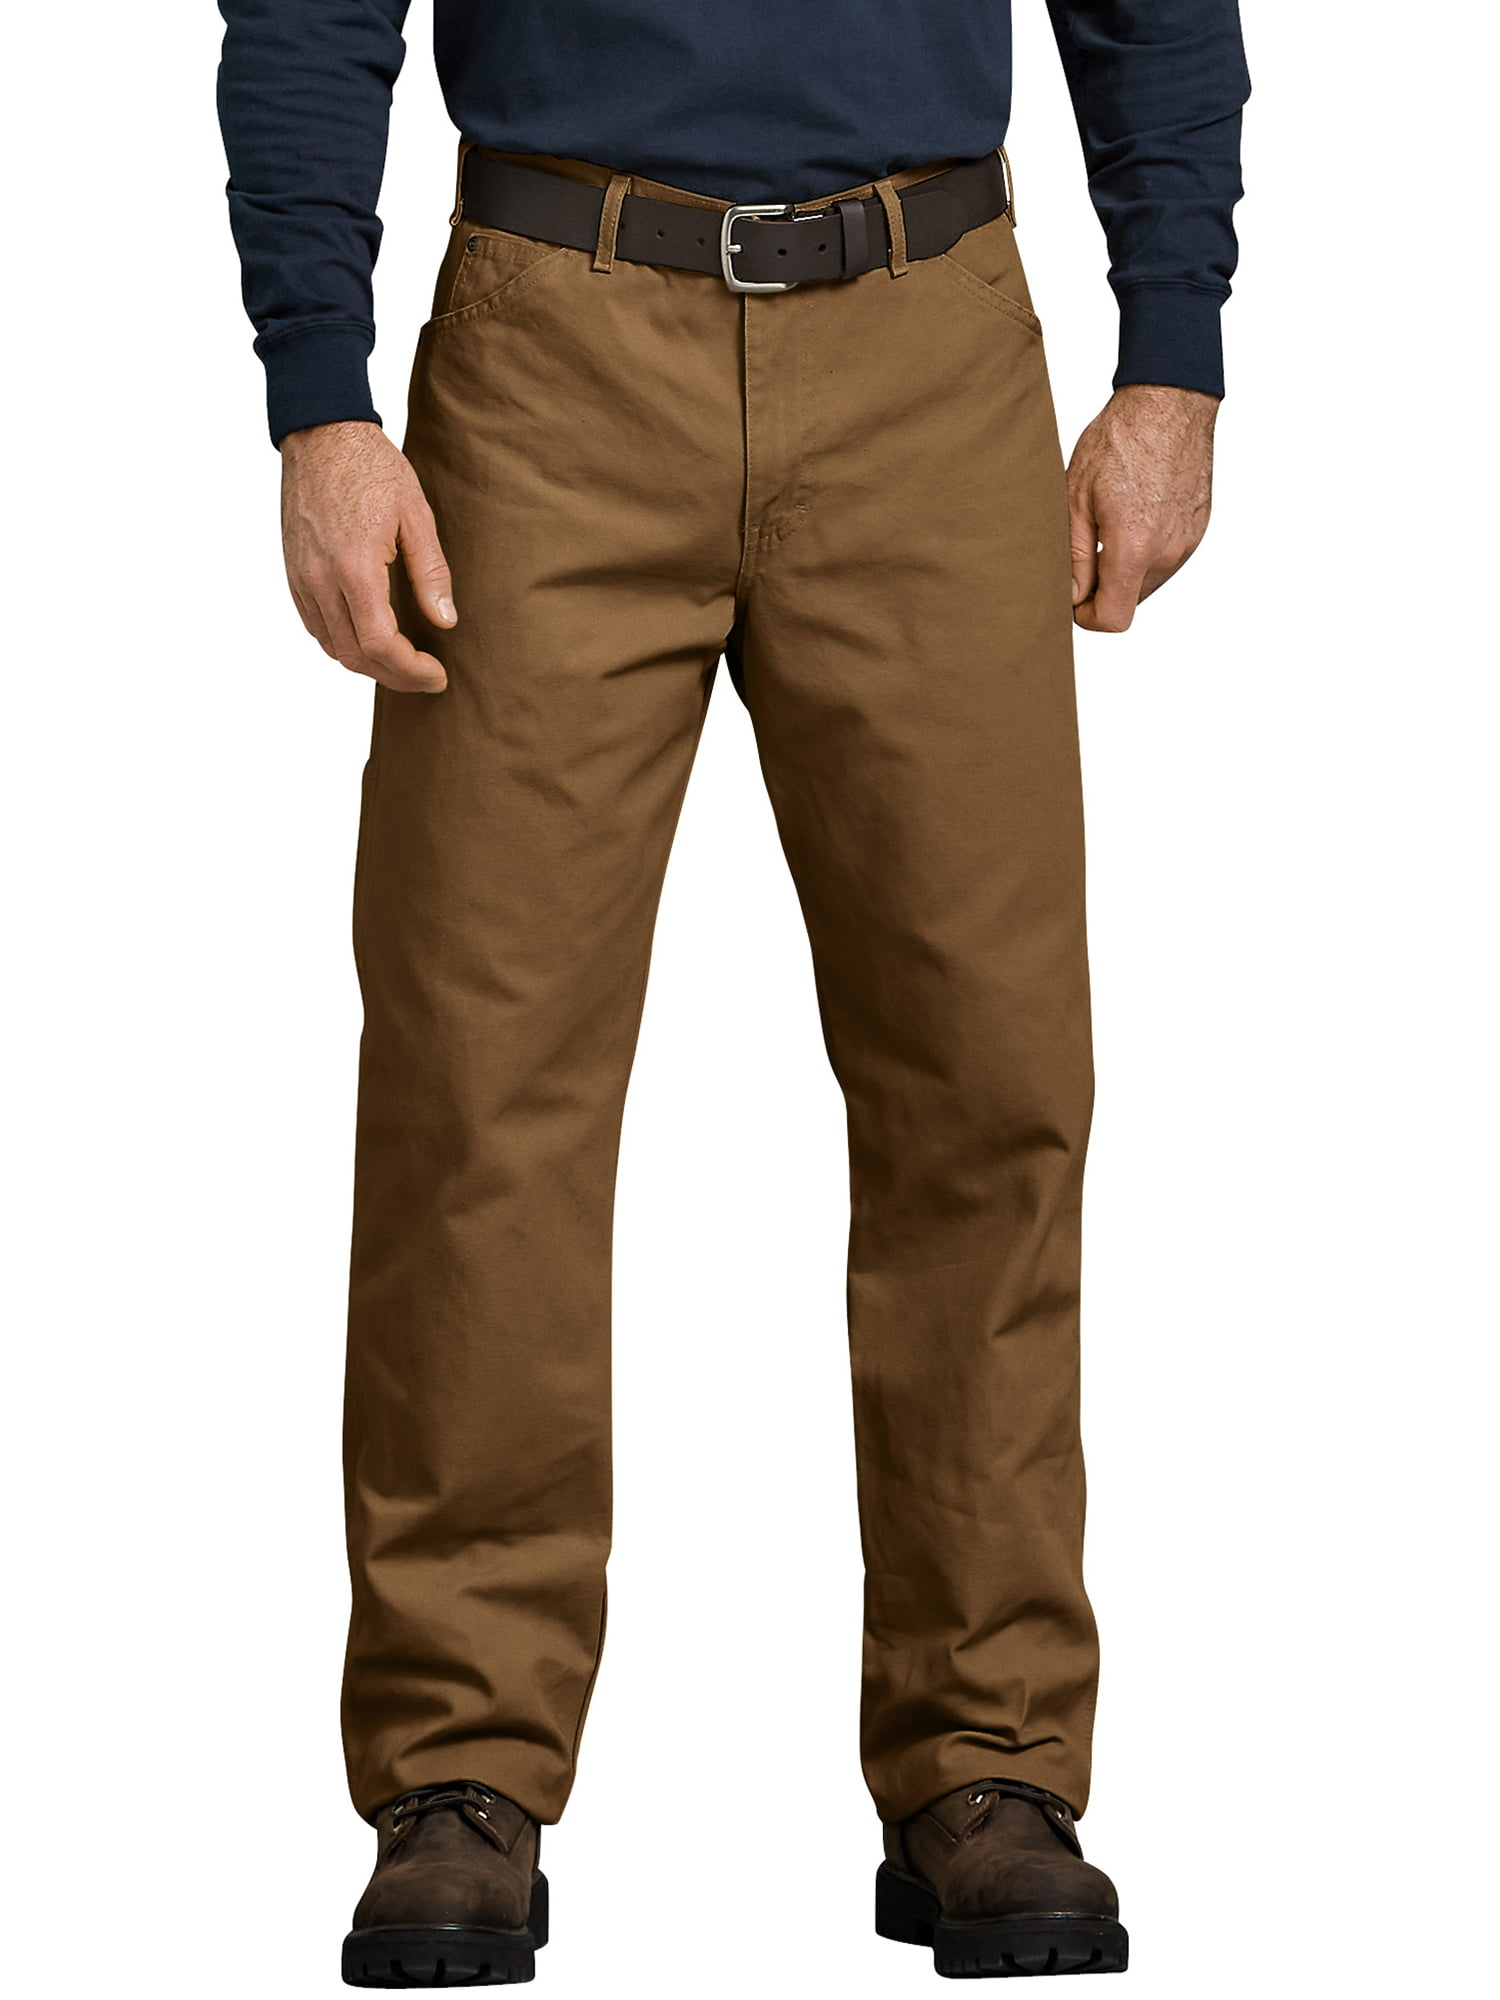 c12aa49e1f4cc9 Dickies - Dickies Men's Relaxed Fit Duck Carpenter Jean - Walmart.com